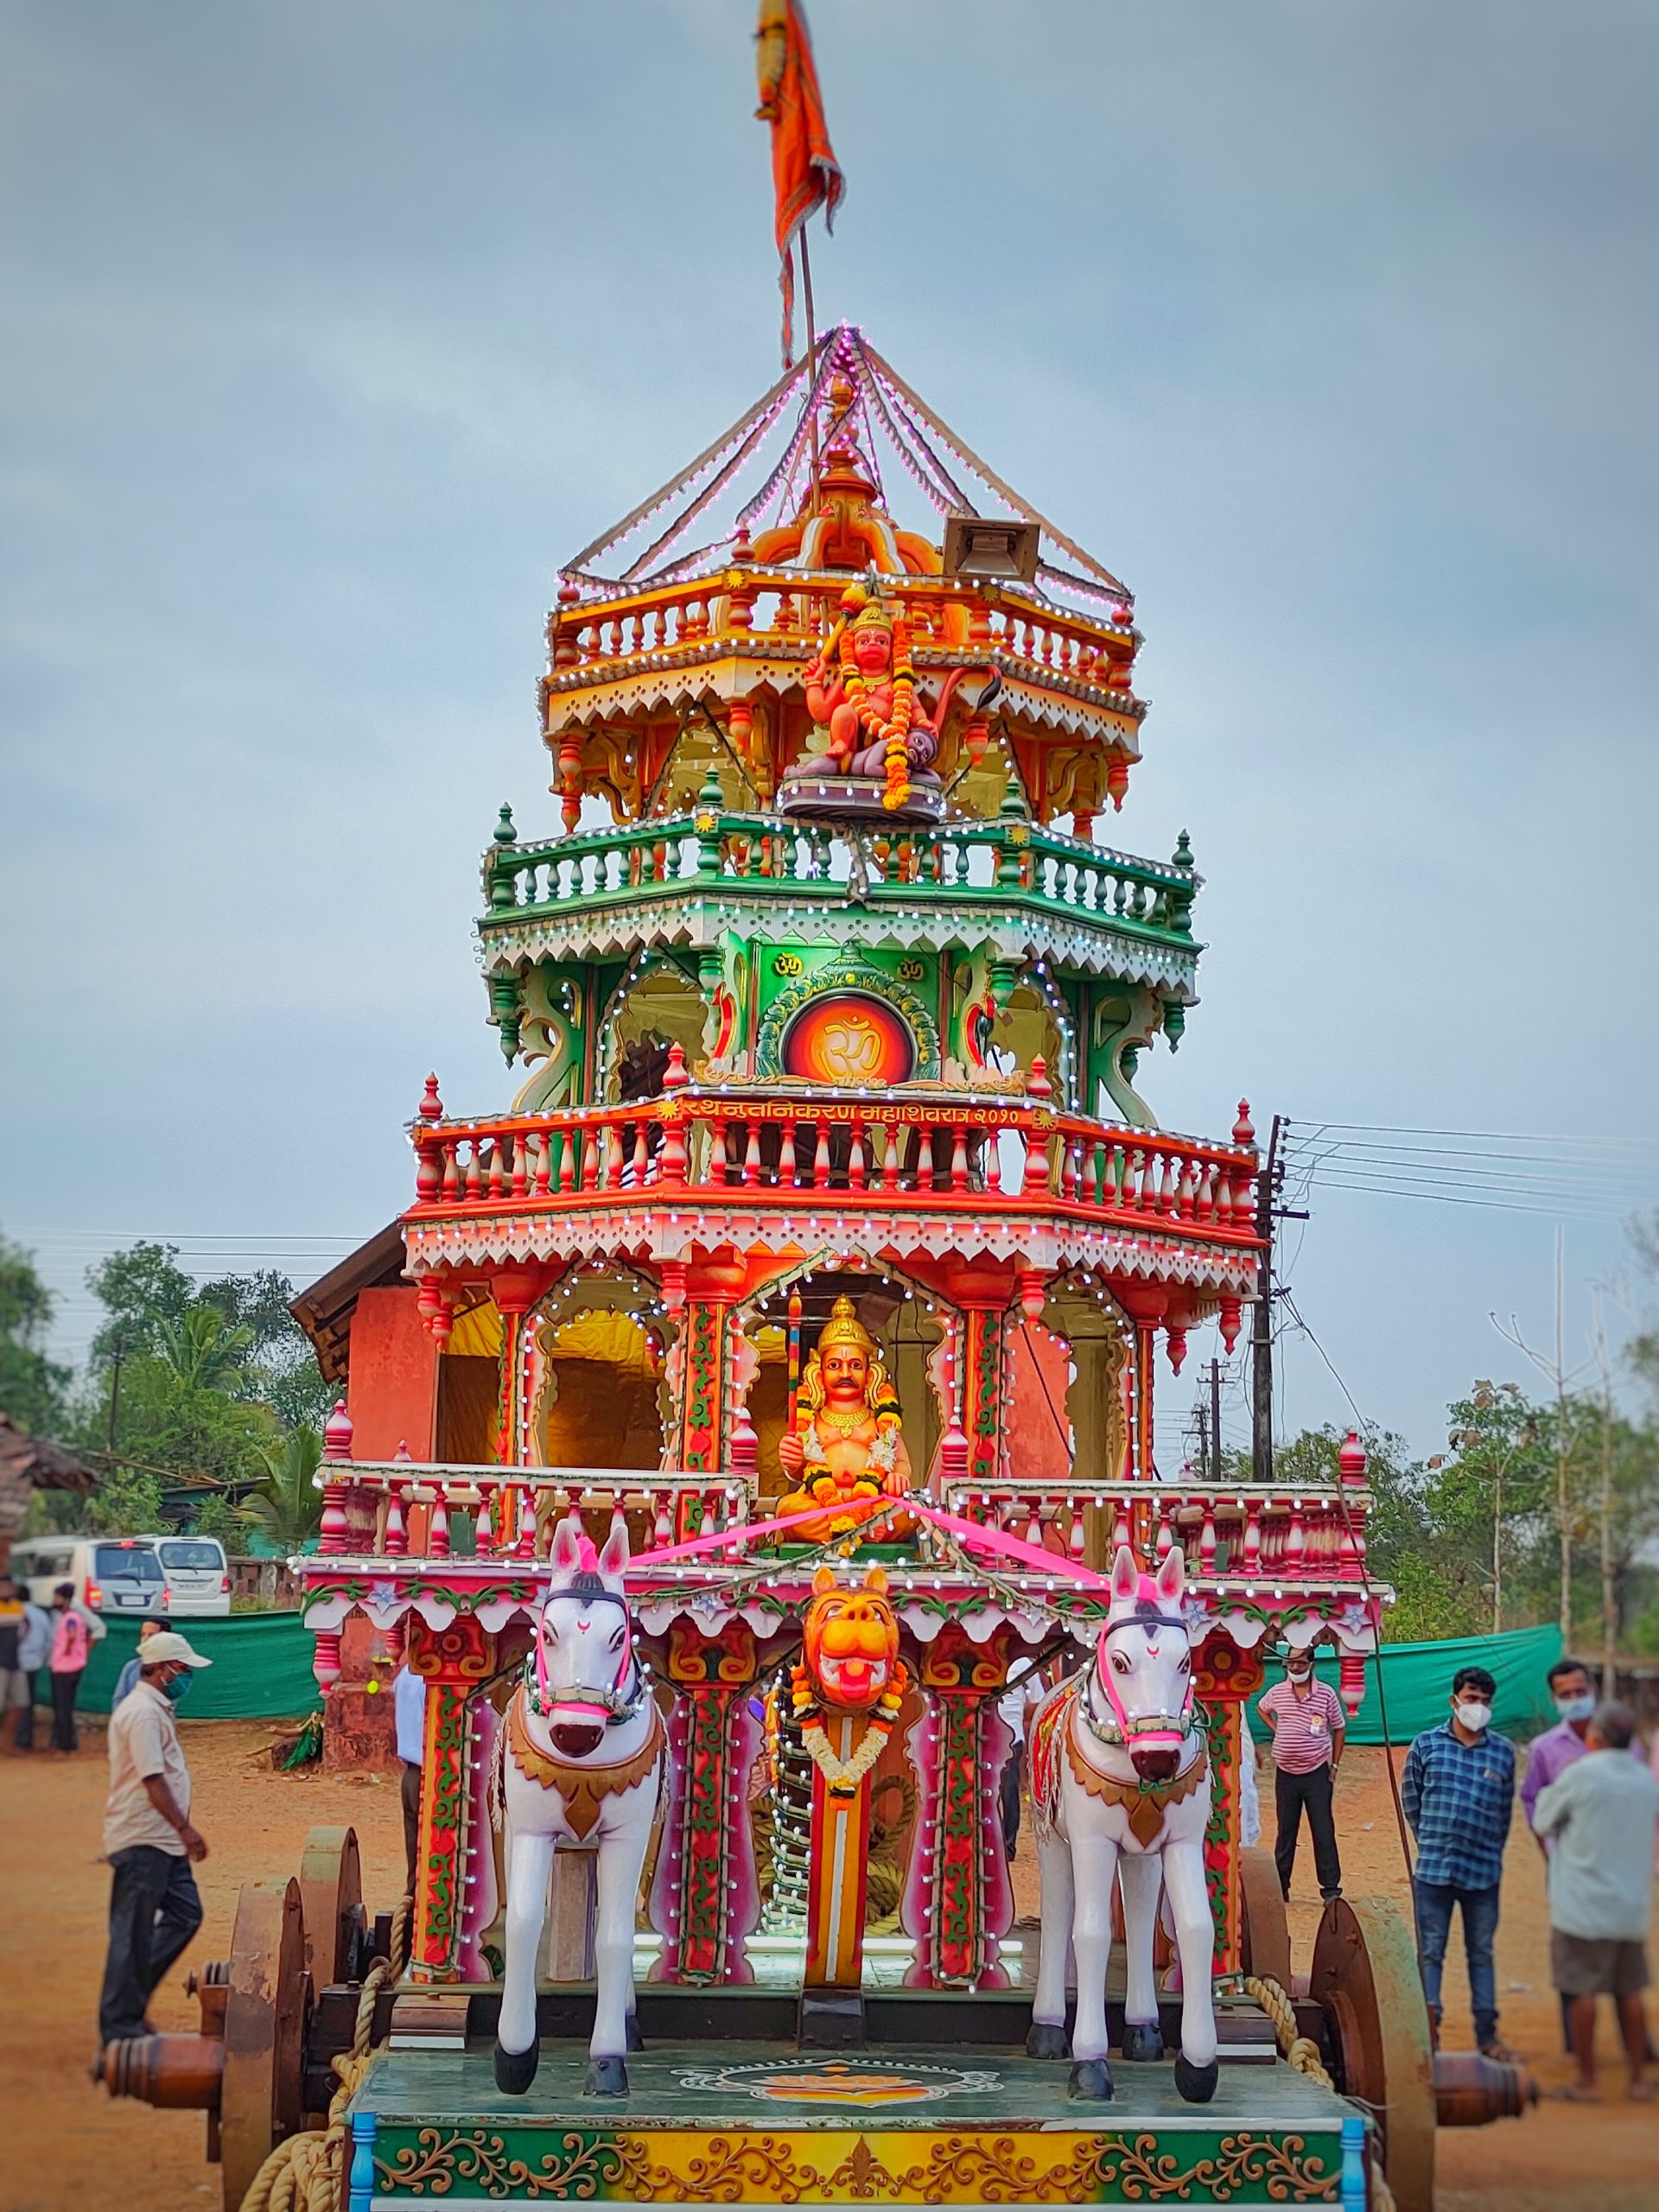 Hindu temple made on a cart